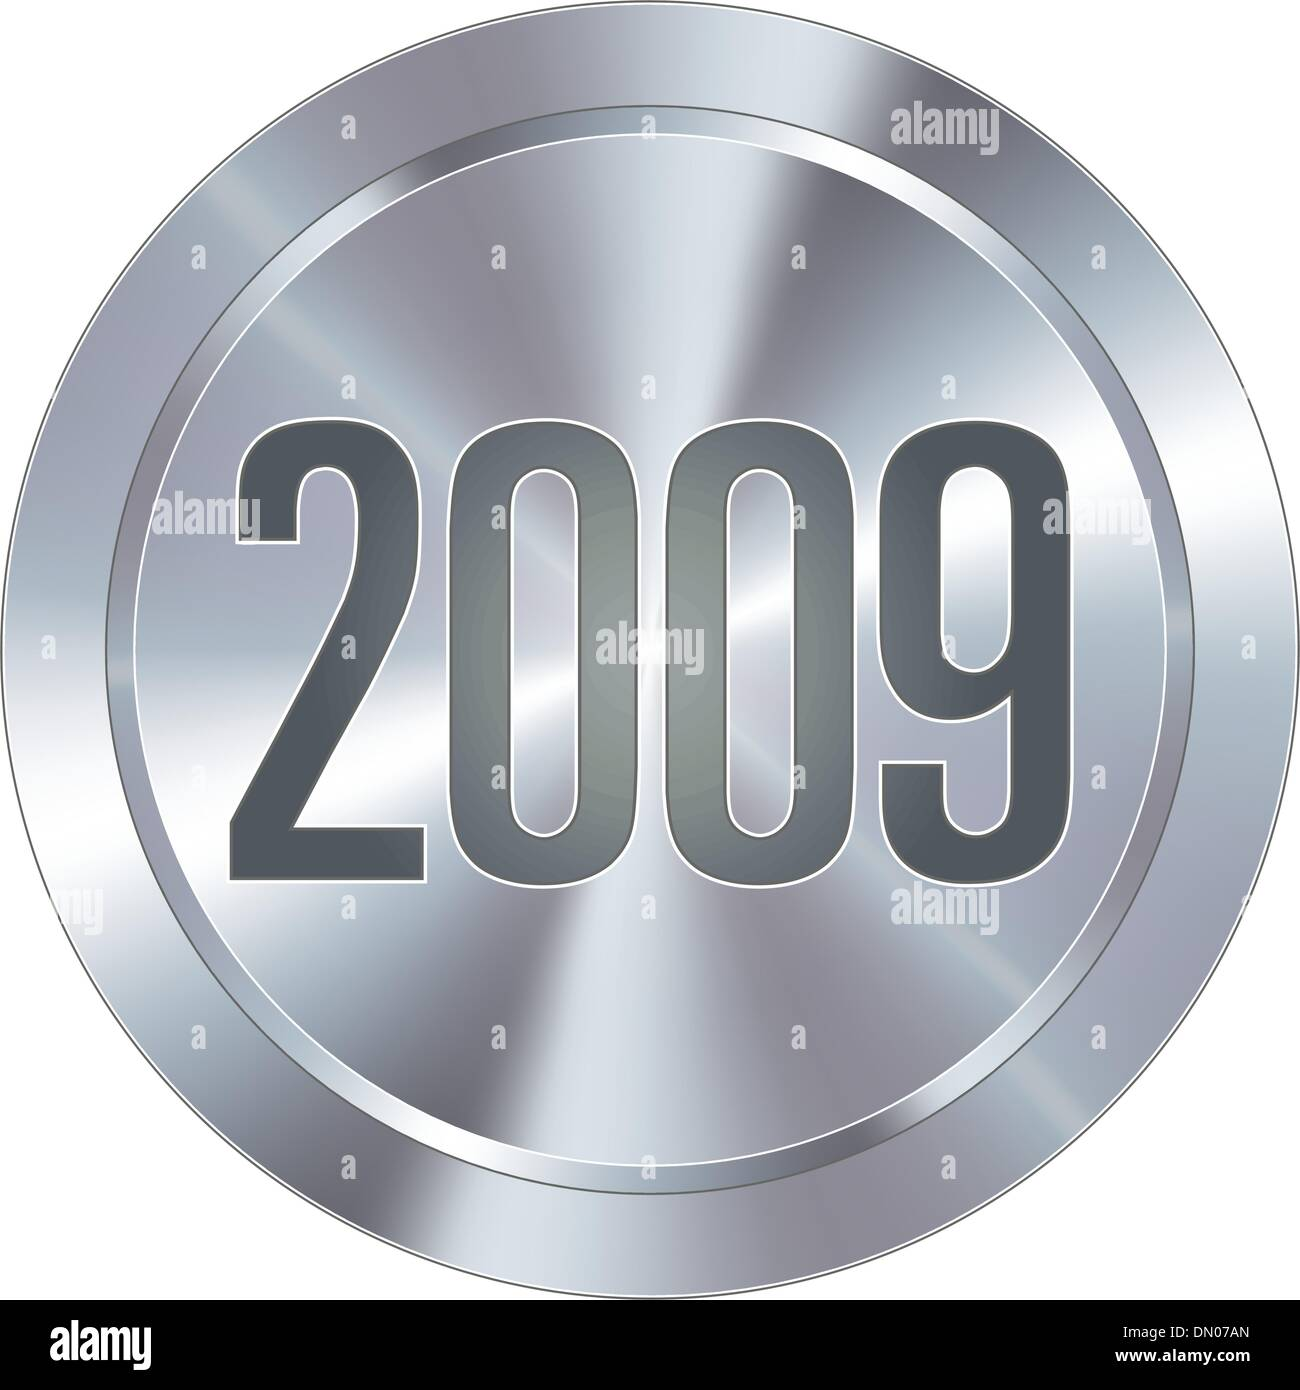 2009 industrial button - Stock Vector